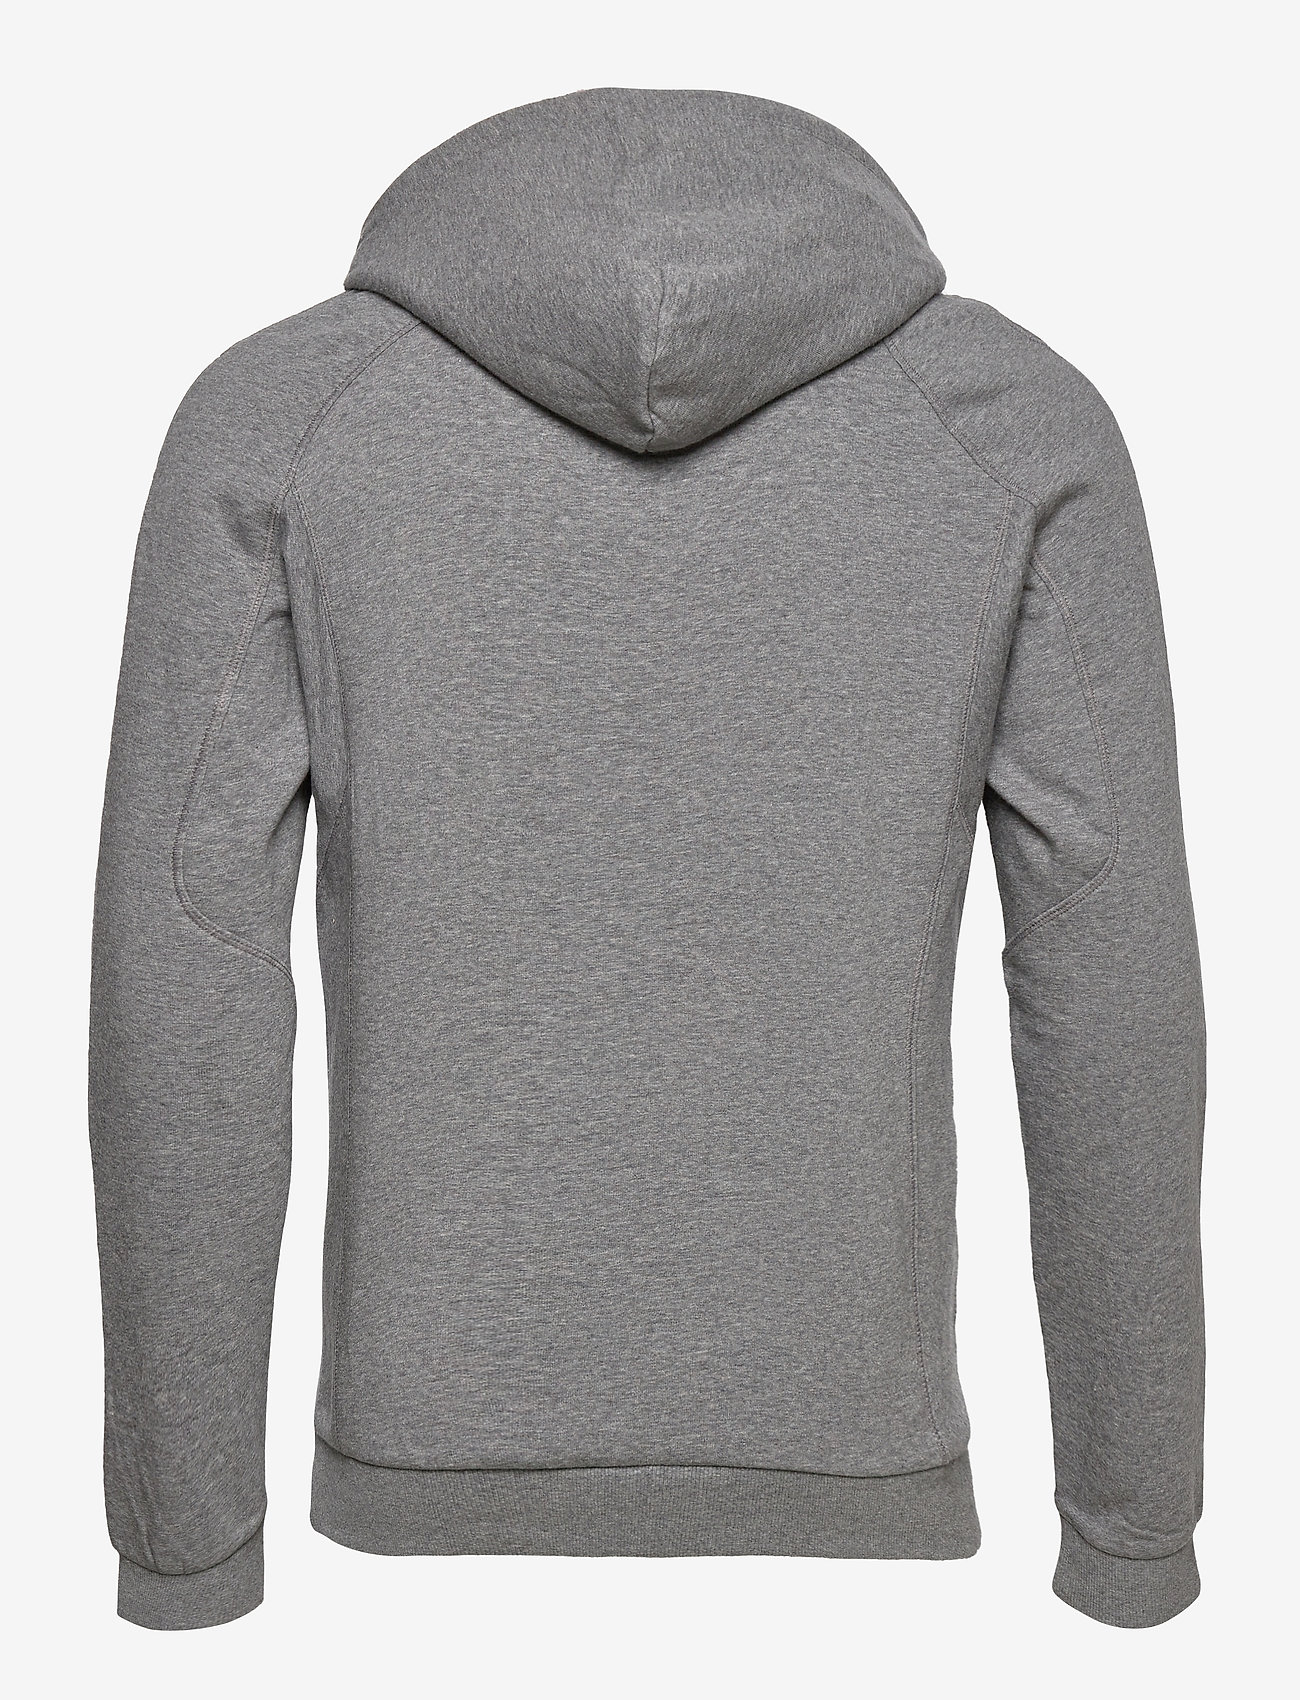 Peak Performance M Ground Hood Black - Sweatshirts GREY MELANGE - Menn Klær